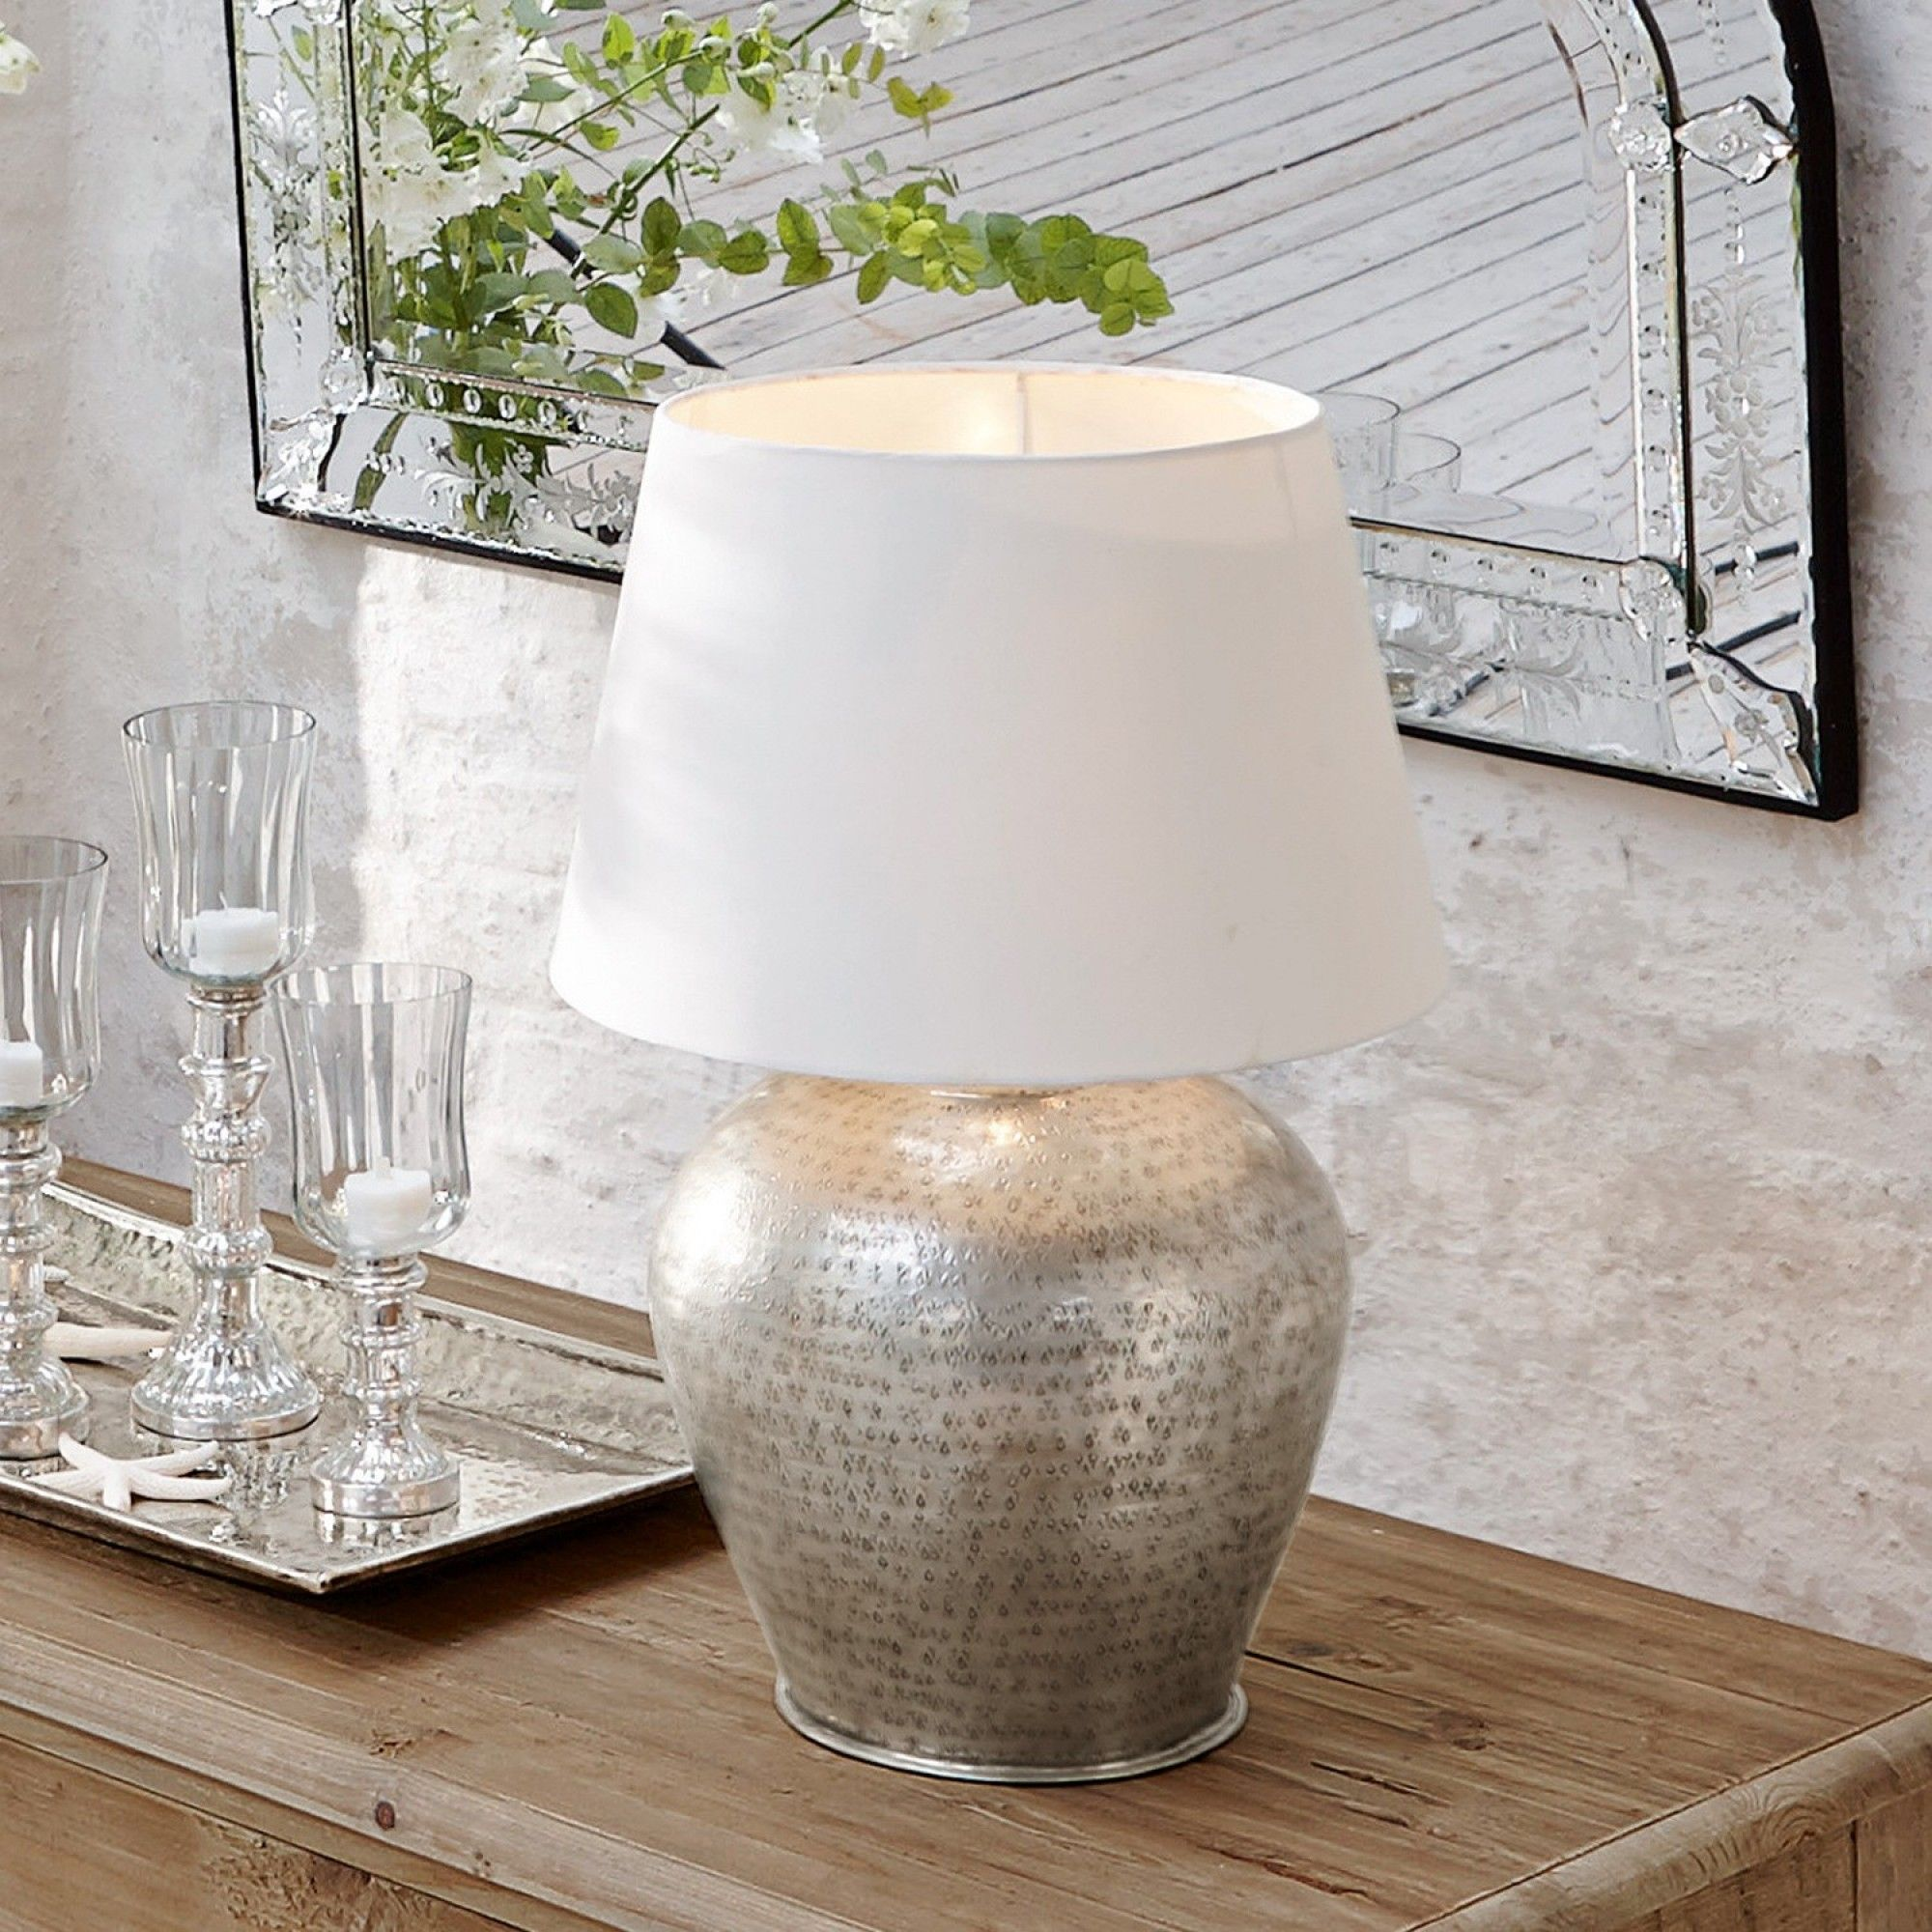 Schlafzimmer Lampe Tischlampe Tischlampe Penelope Loberon Coming Home Shopping Pinterest